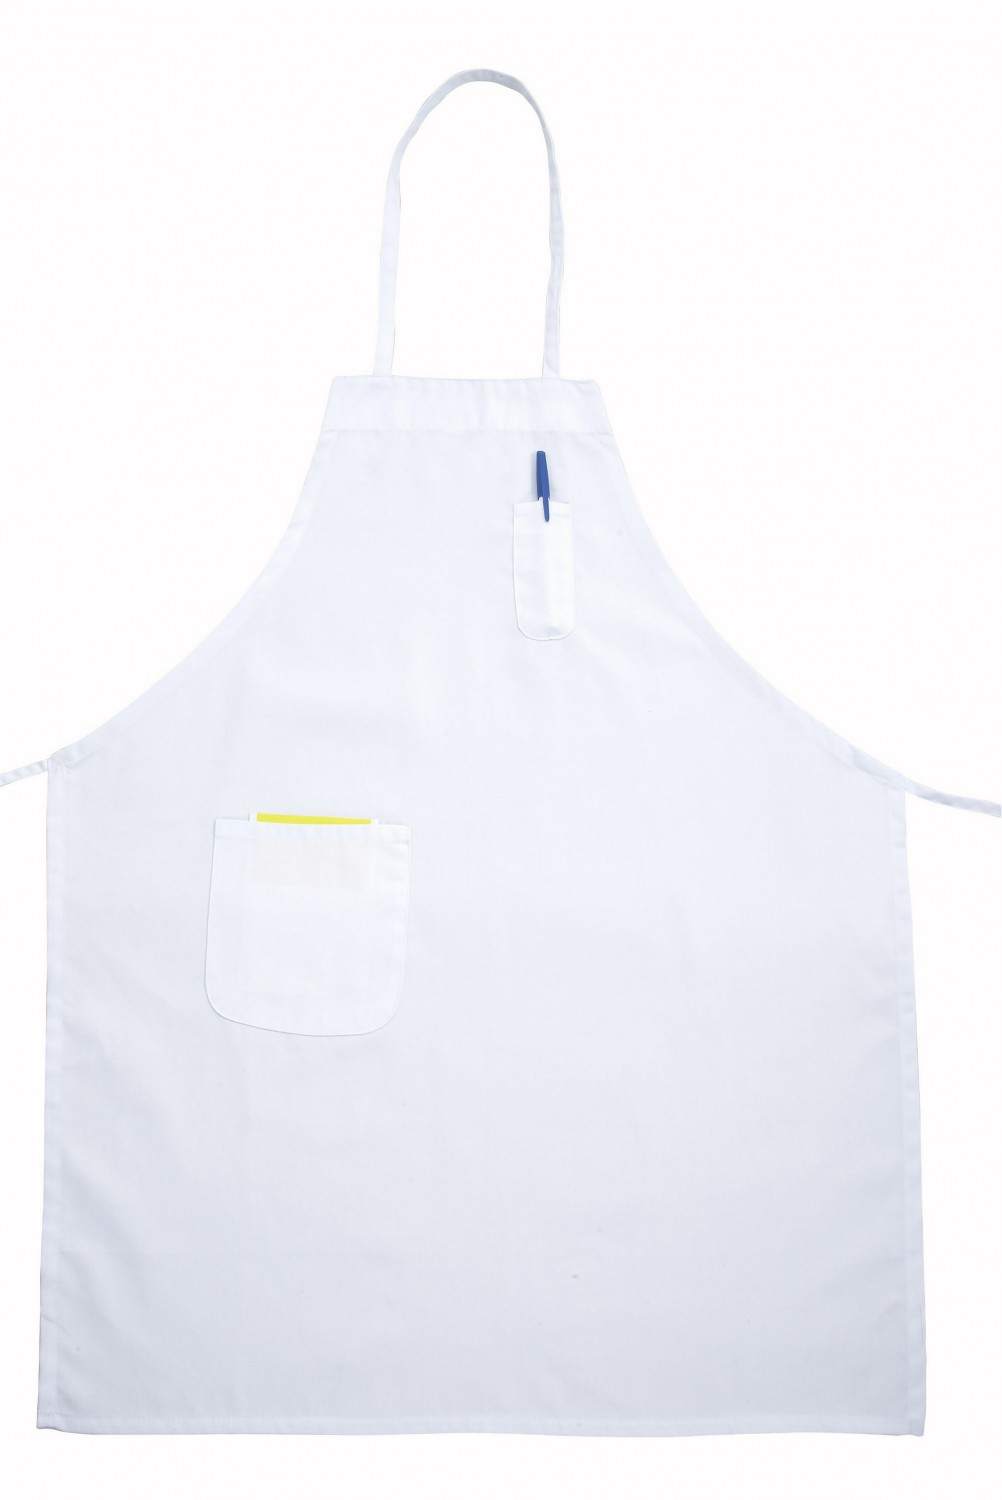 Bib Apron with Pocket (JB Wear)